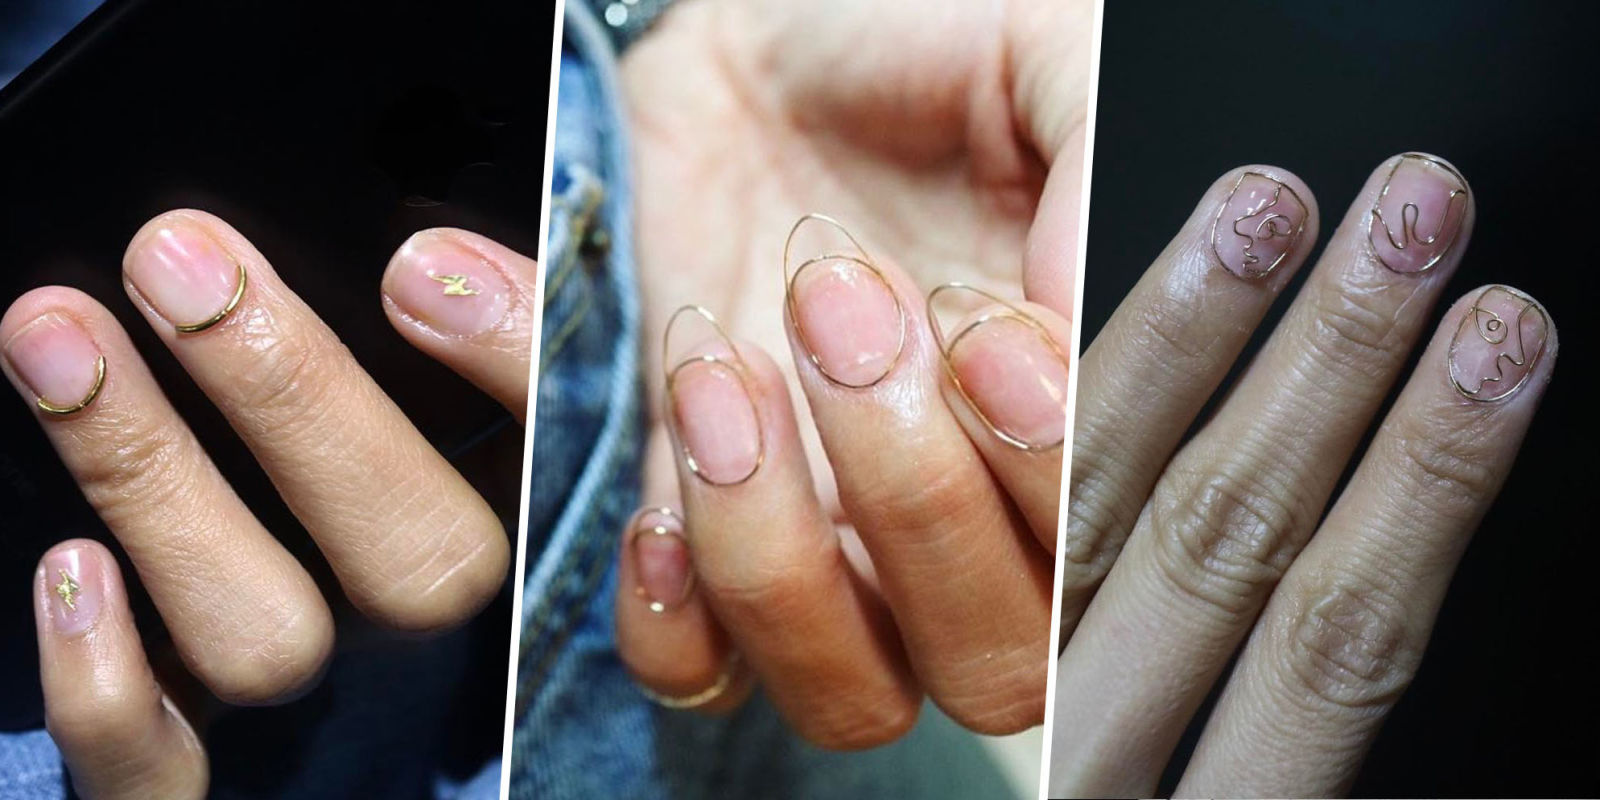 Wire Nail Art: Jaw dropping Weird Manicure Trend